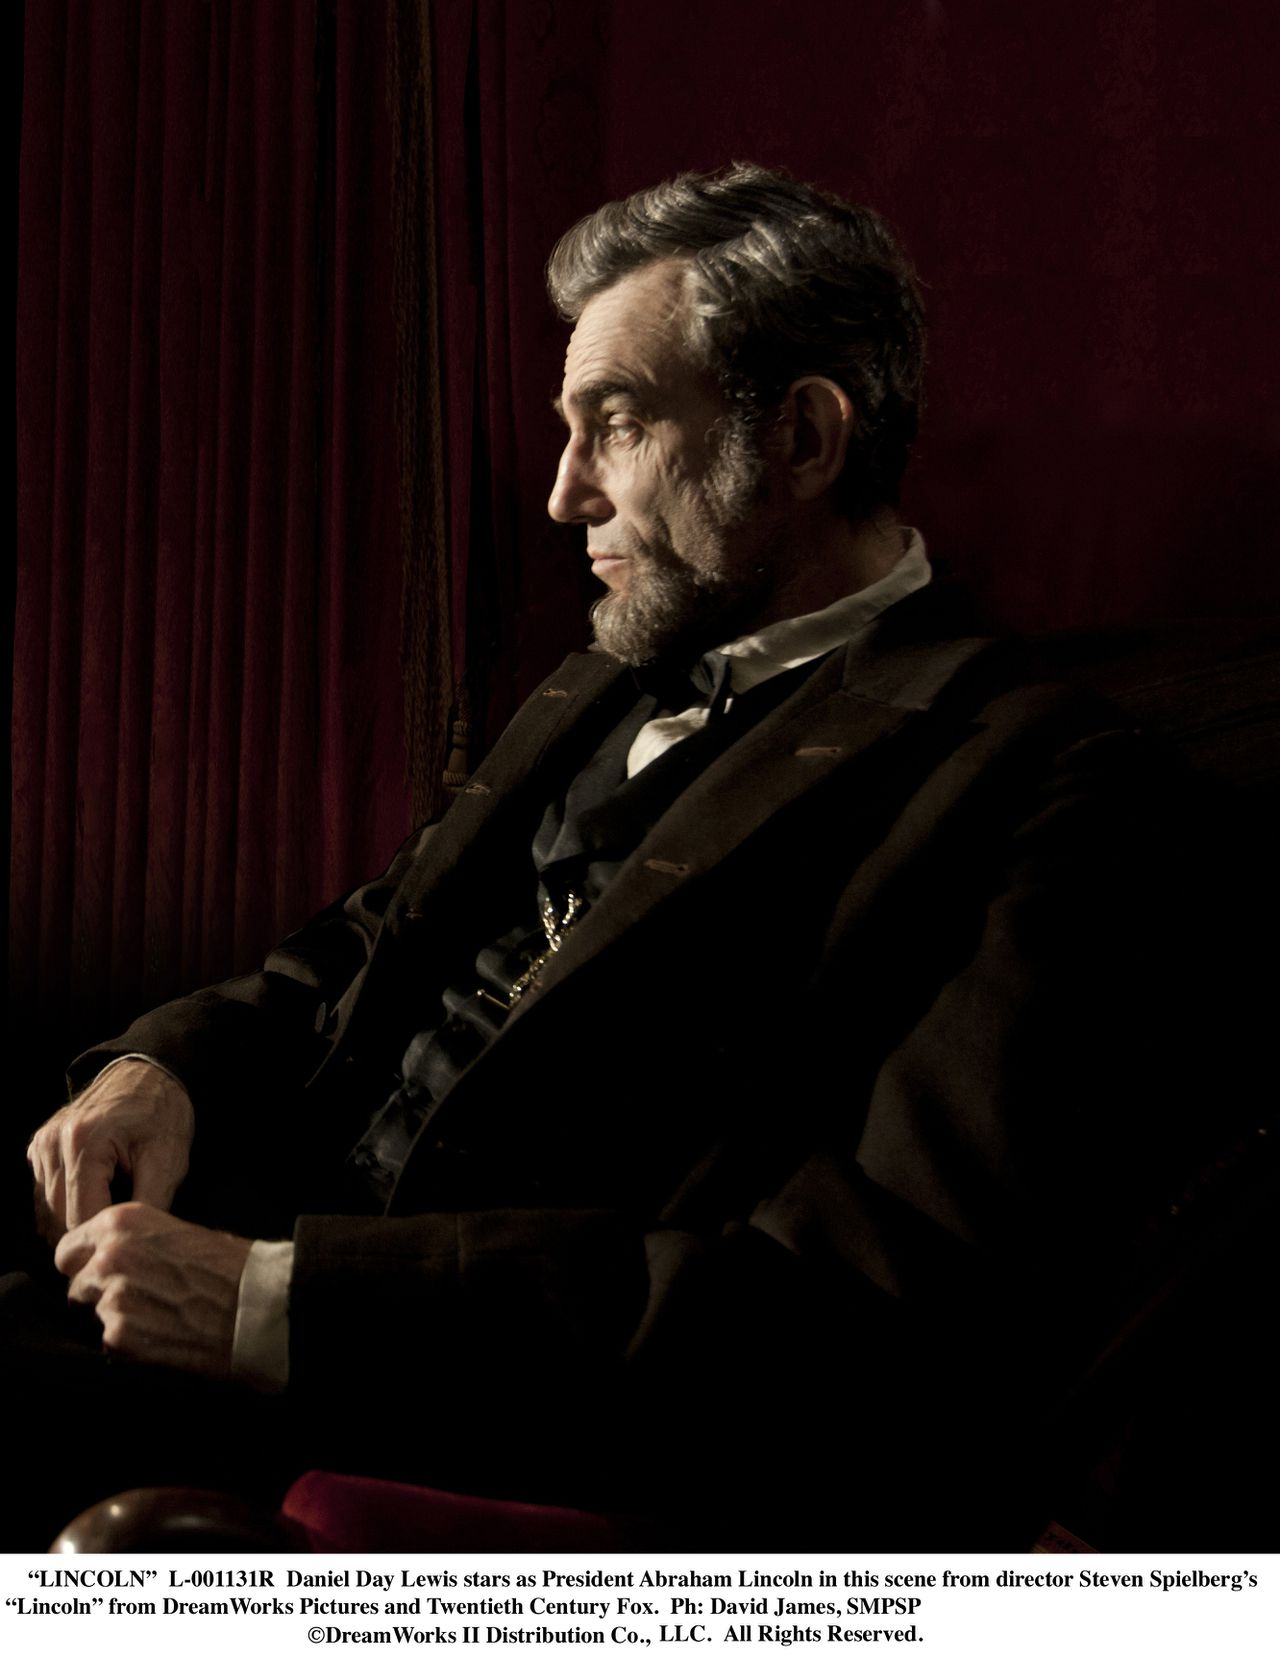 """""""LINCOLN"""" L-001131R Daniel Day Lewis stars as President Abraham Lincoln in this scene from director Steven Spielberg's """"Lincoln"""" from DreamWorks Pictures and Twentieth Century Fox. Ph: David James, SMPSP ©DreamWorks II Distribution Co., LLC. All Rights Reserved."""